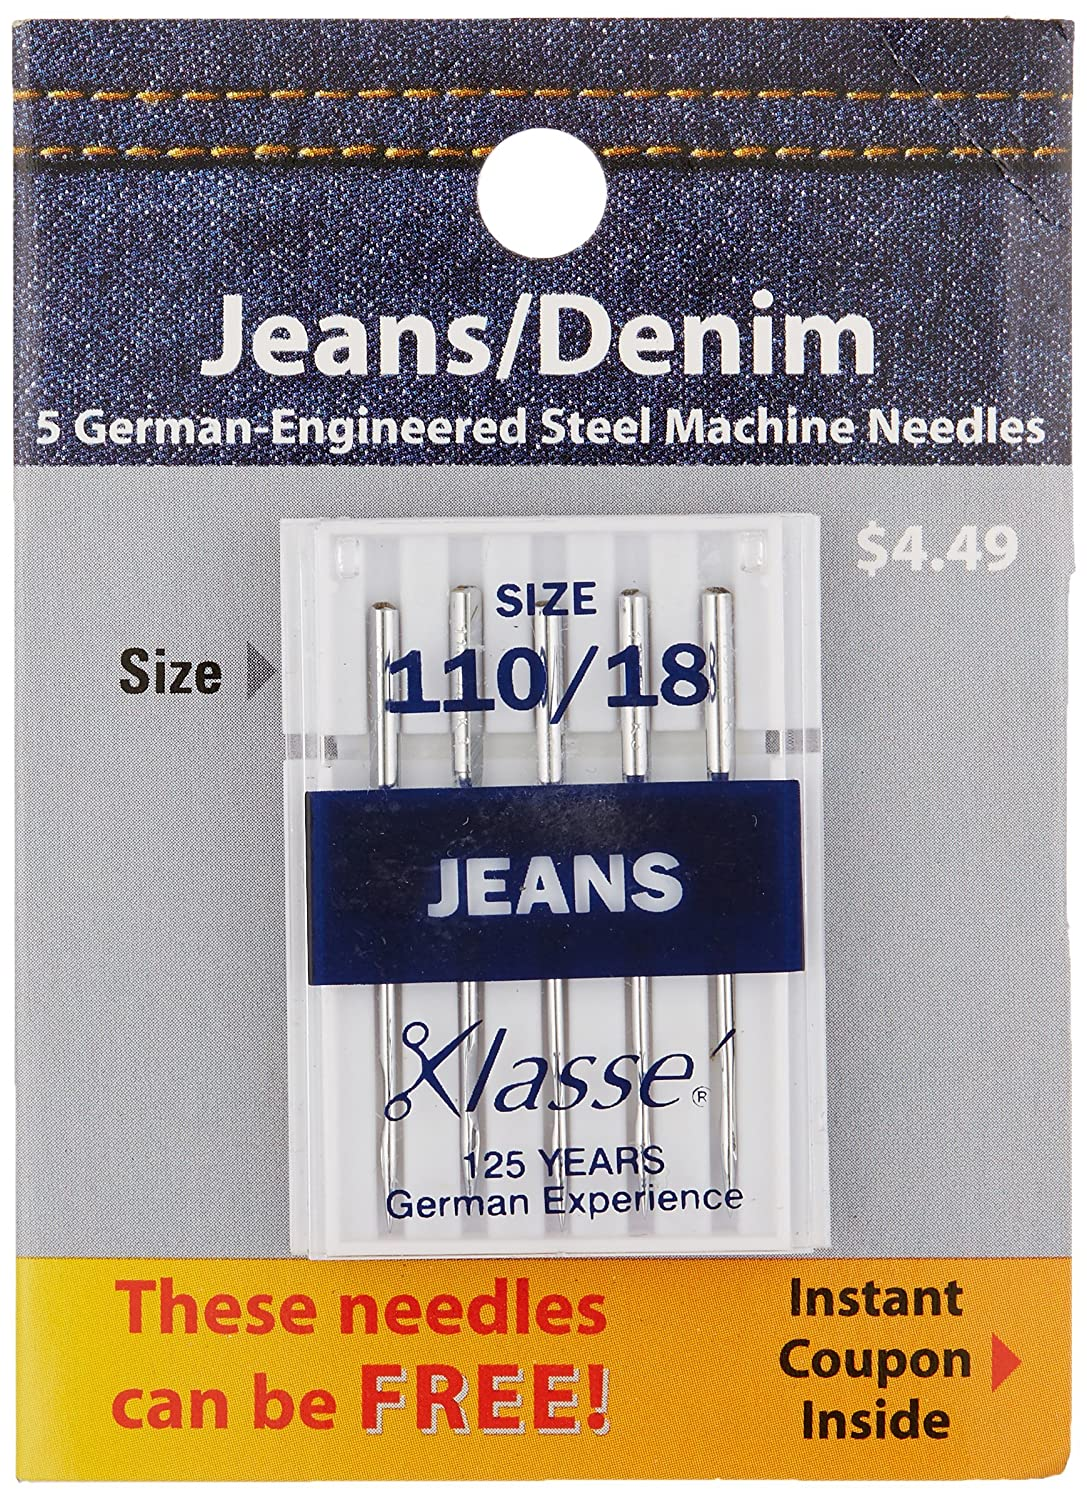 Tacony Corporation Klasse Jeans/Denim Machine Needles, 110/18 5-Pack Notions - In Network A5103-11018